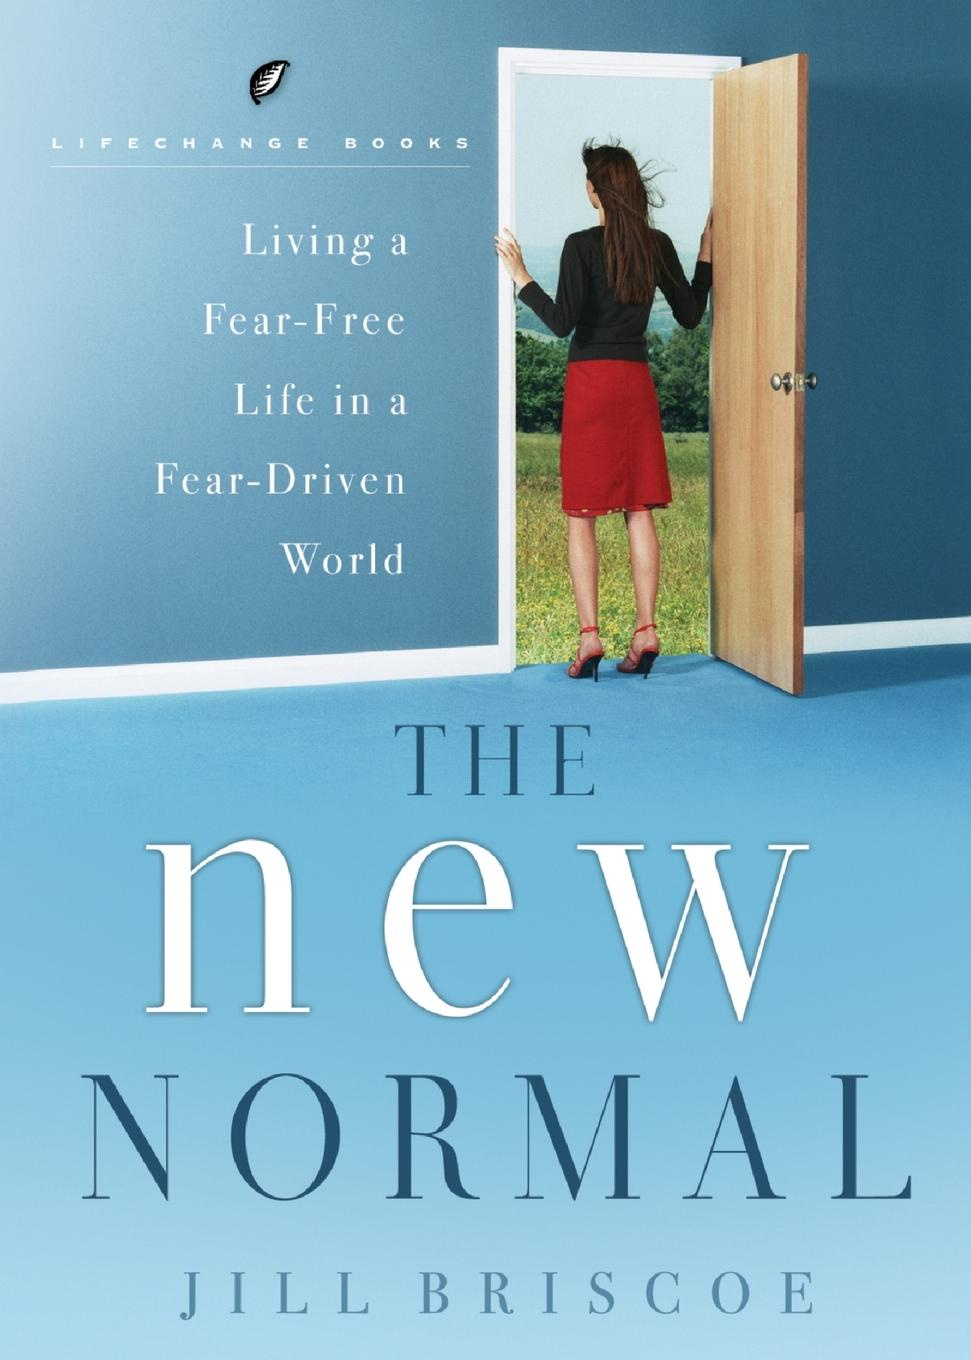 лучшая цена Jill Briscoe The New Normal-Living a Fear-Free Life in a Fear-Driven World